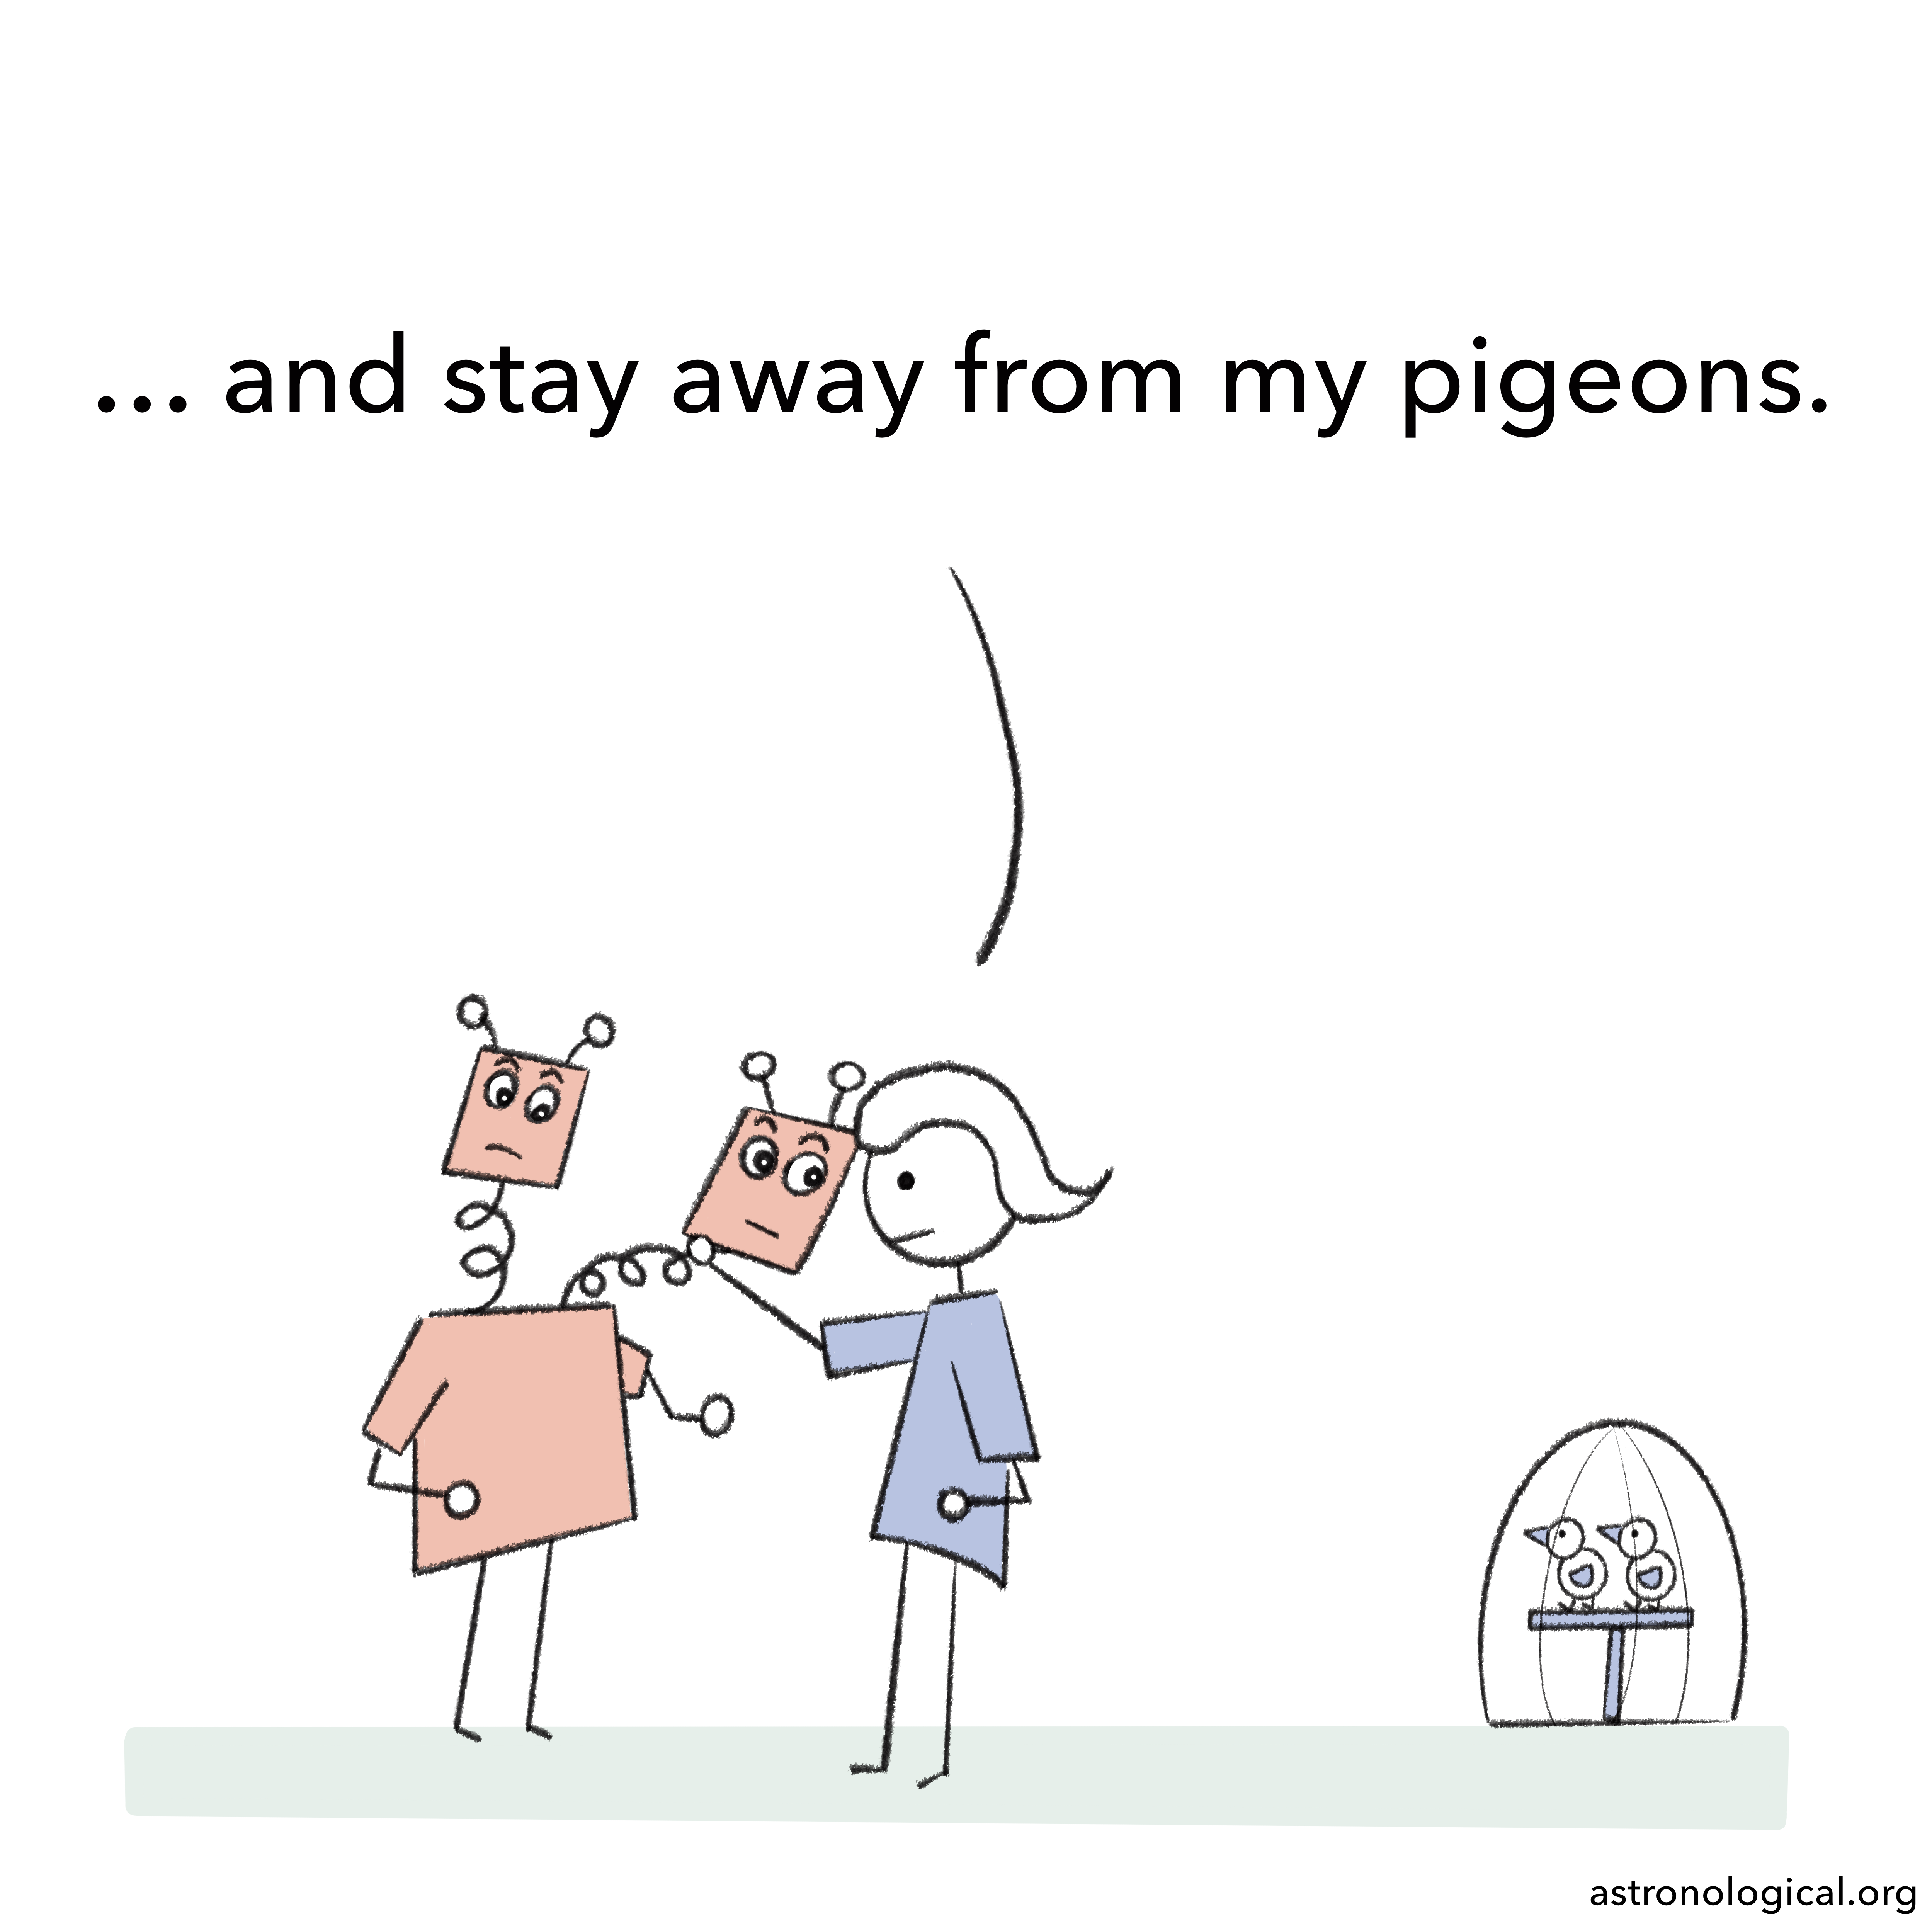 The girl grabs one surprised twin by the neck threateningly and says: And stay away from my pigeons.